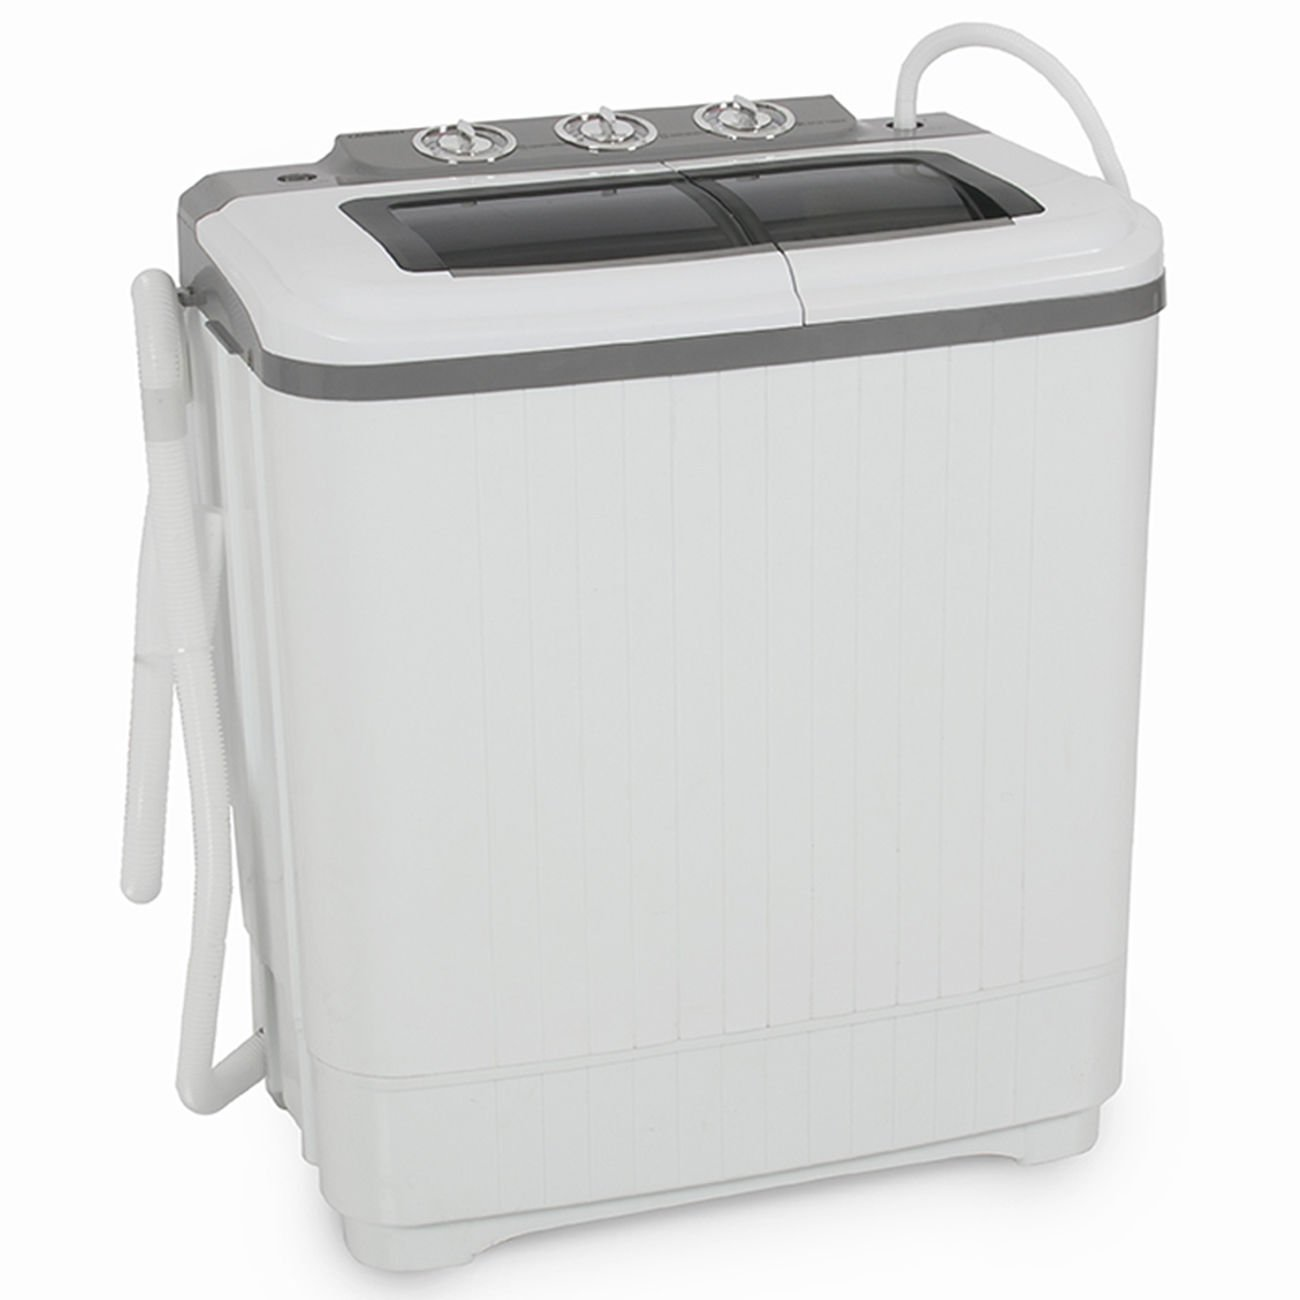 GHP Home Improvement Portable Compact 14.5''Lx24''Wx28-14/4''H Washing Machine by Globe House Products